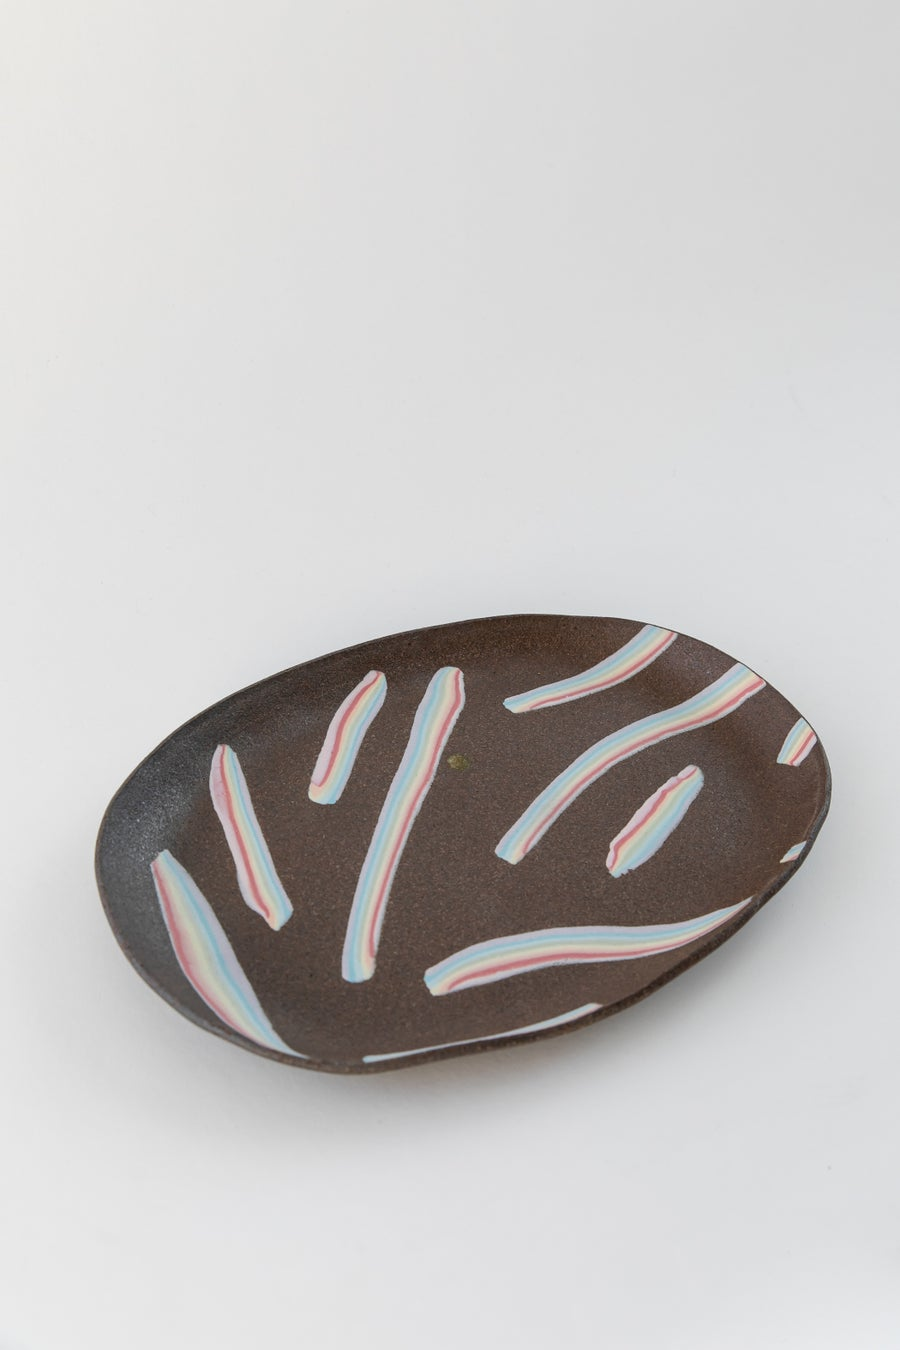 Image of X-Large Porcelain Inlay Serving Platter - Rainbow on Dark Sky